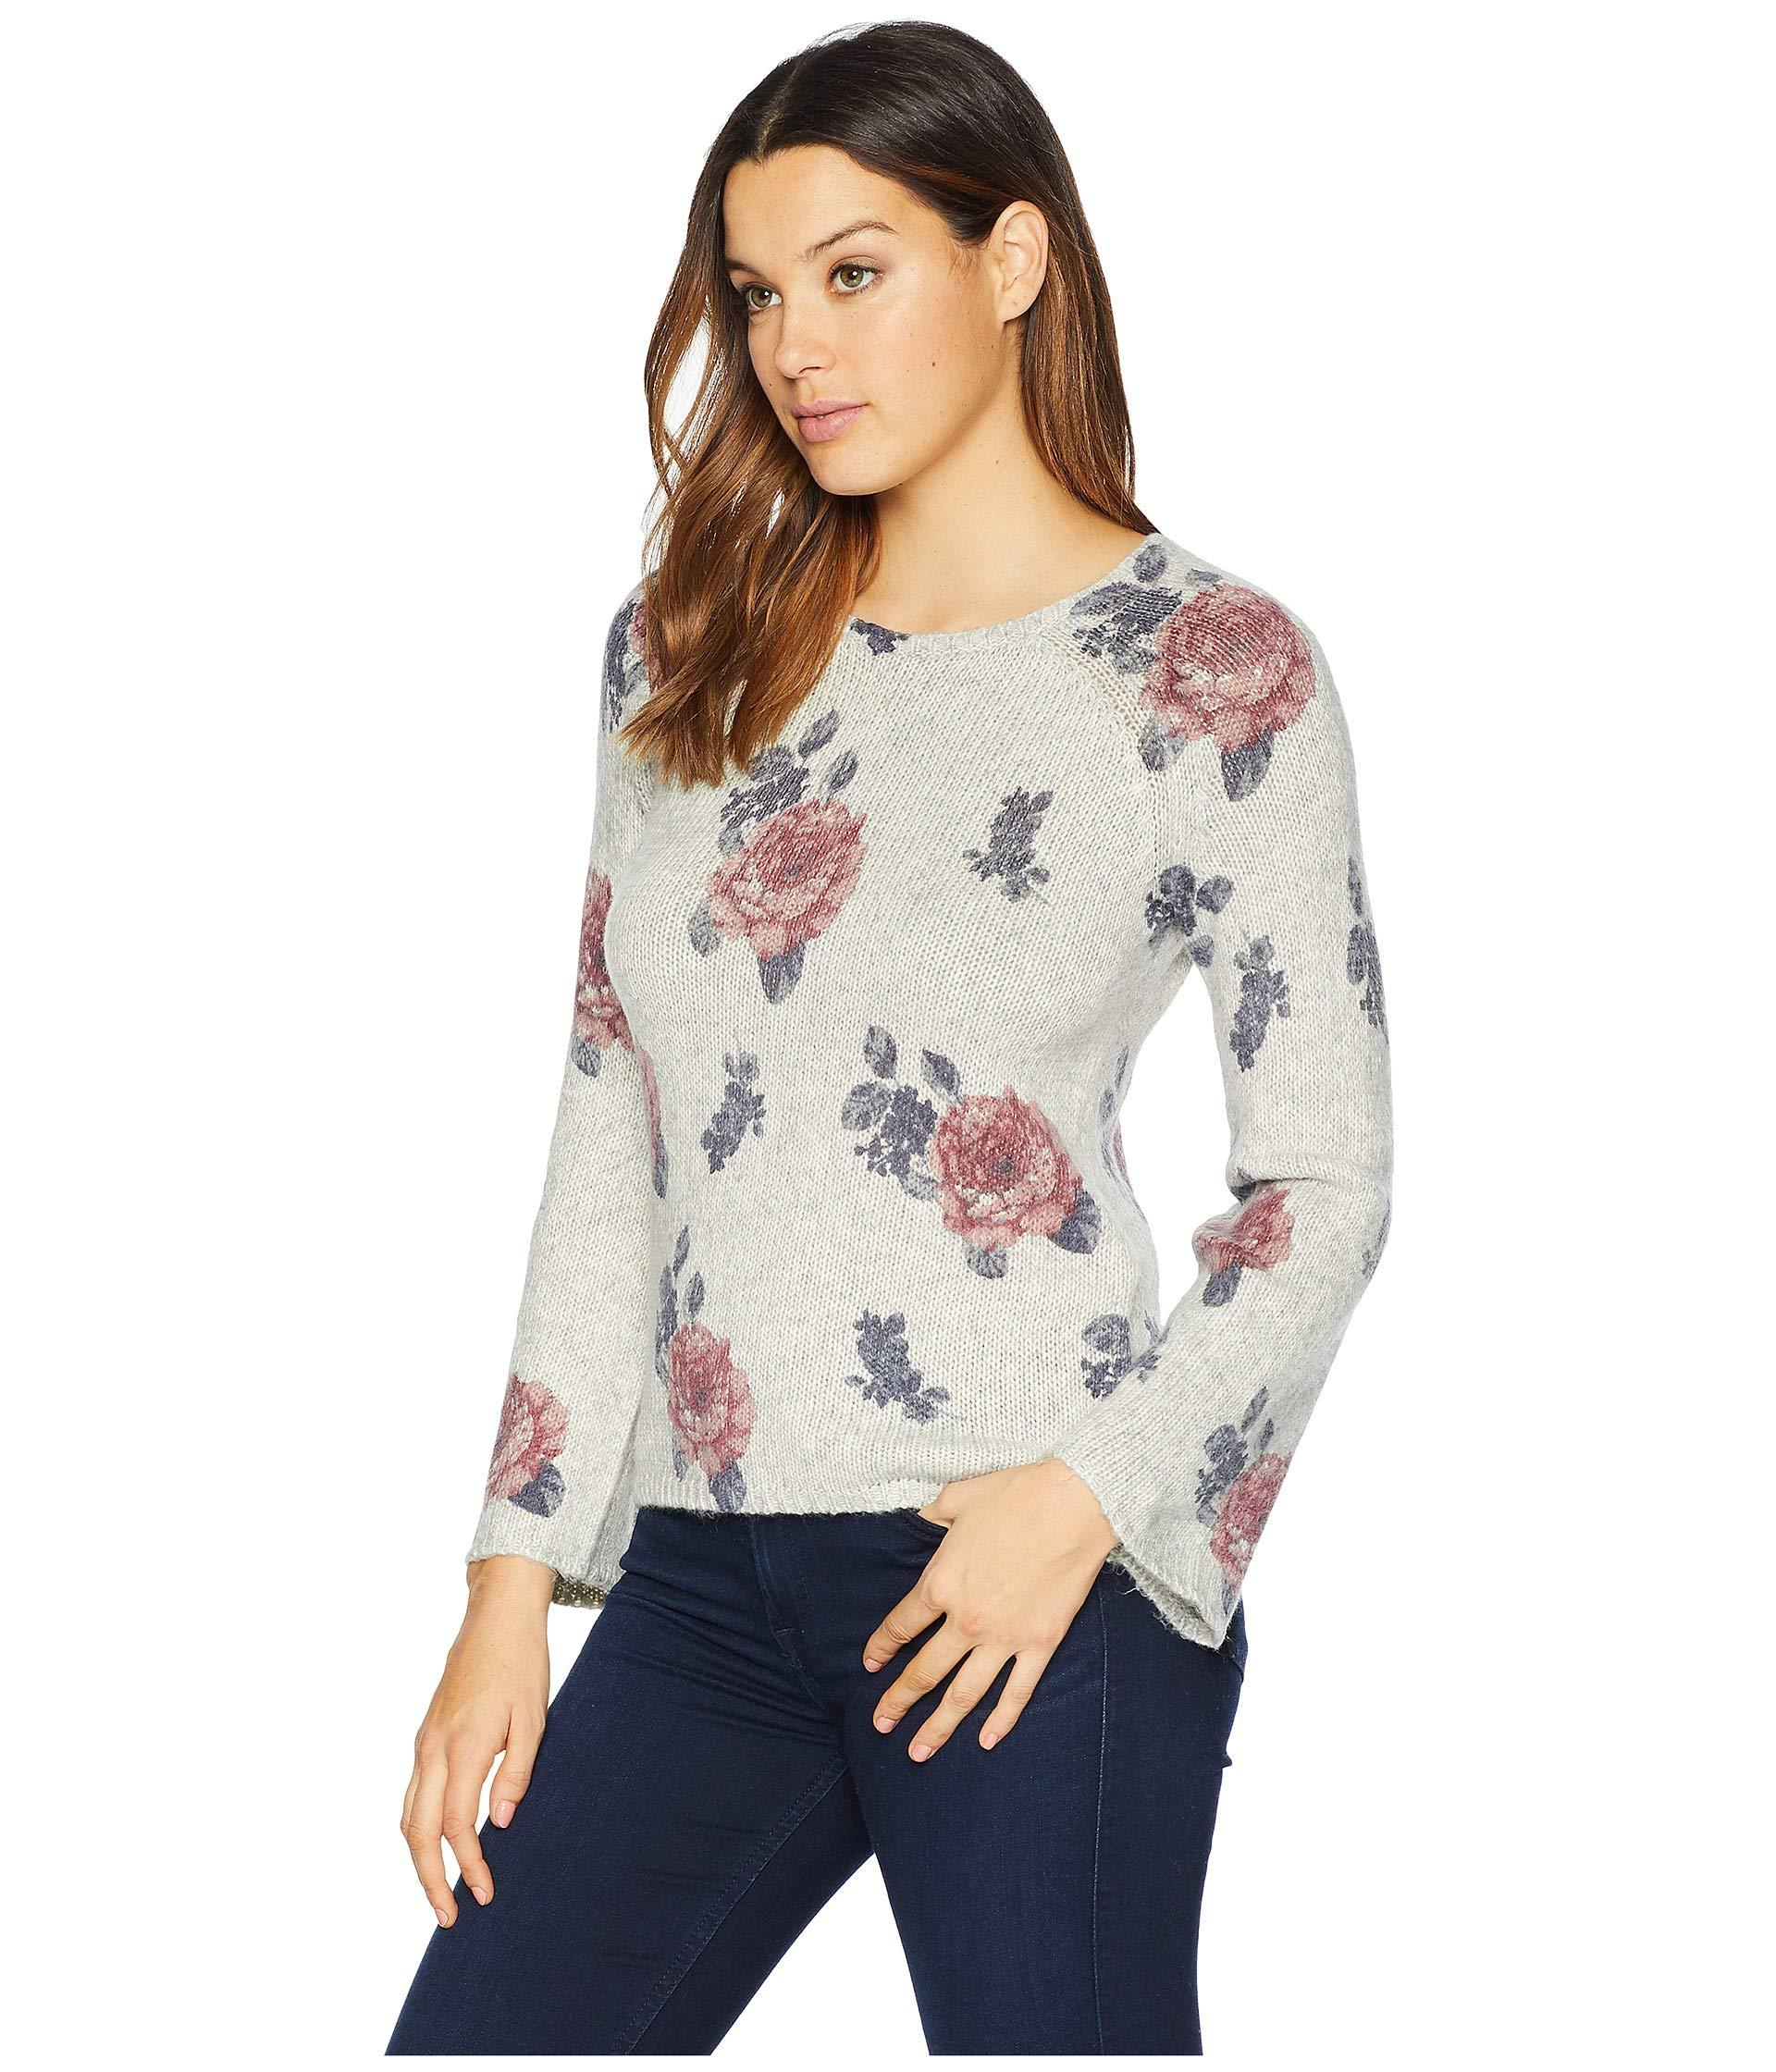 bde9662aff5 Lucky Brand Floral Pullover Sweater in Gray - Save 52% - Lyst